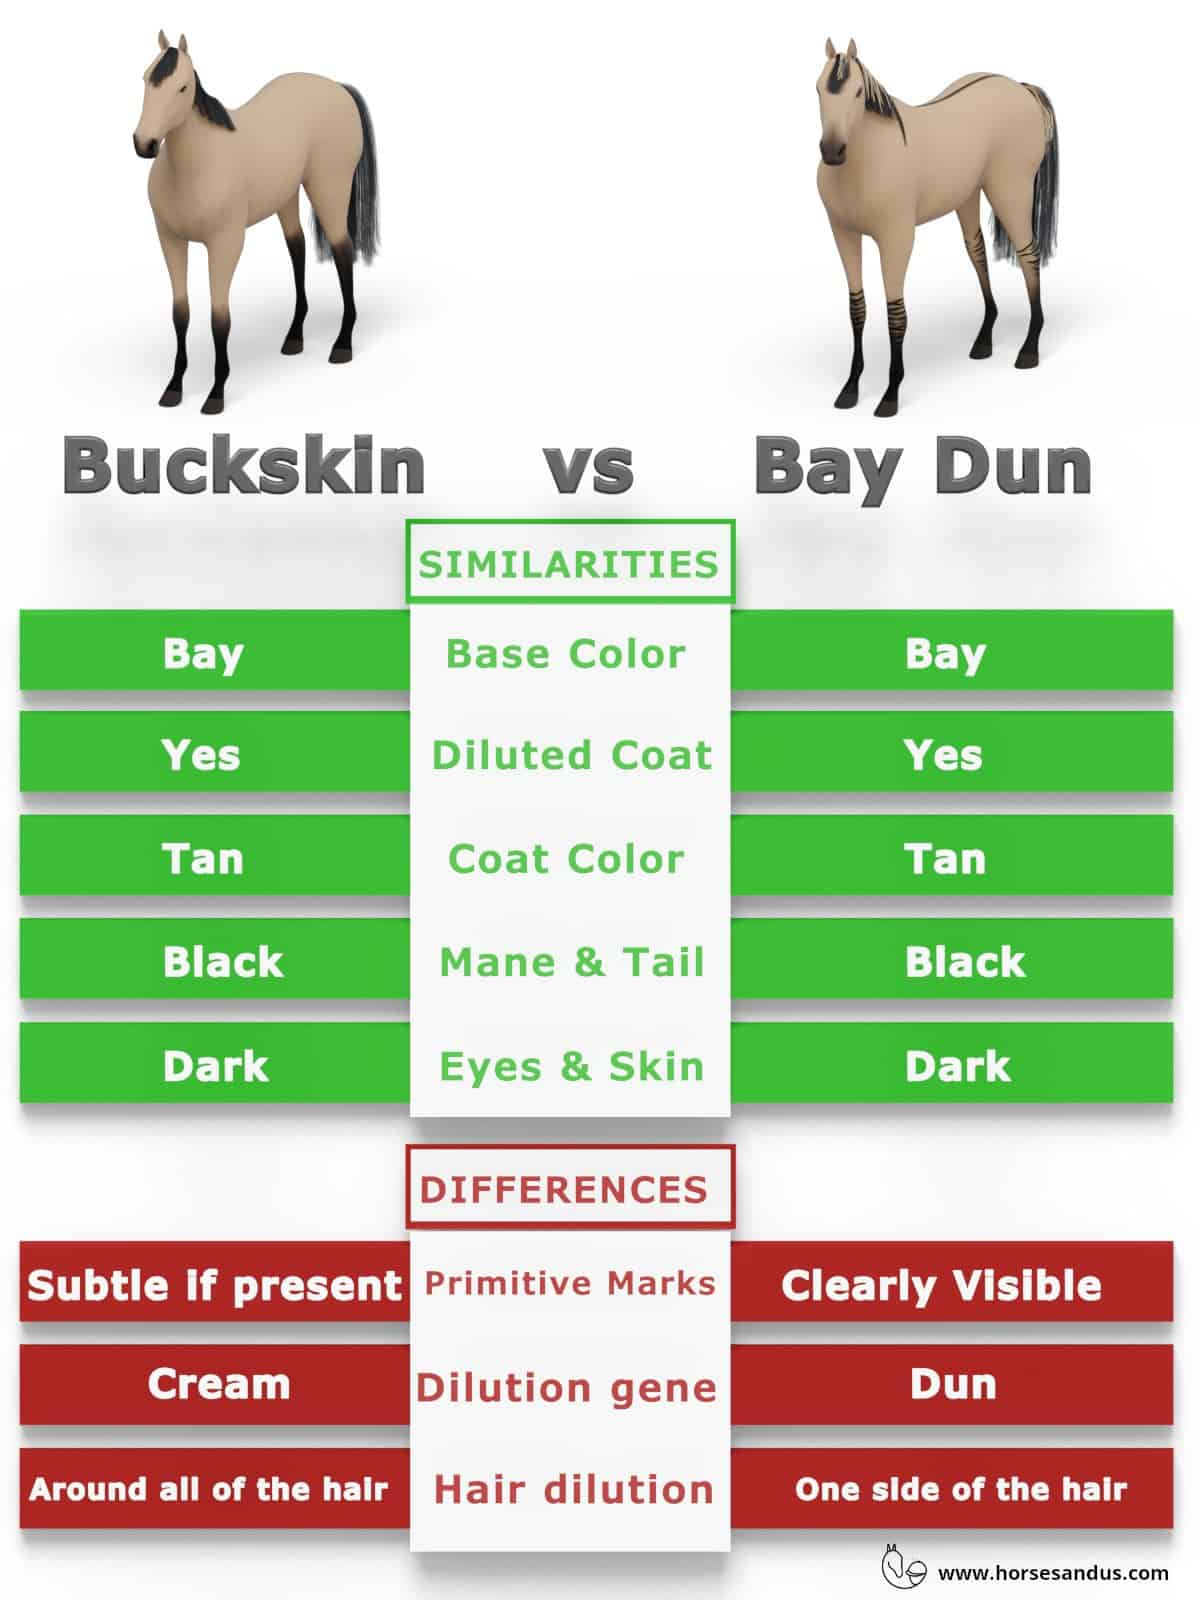 Buckskin vs Bay Dun horses - what are the differences